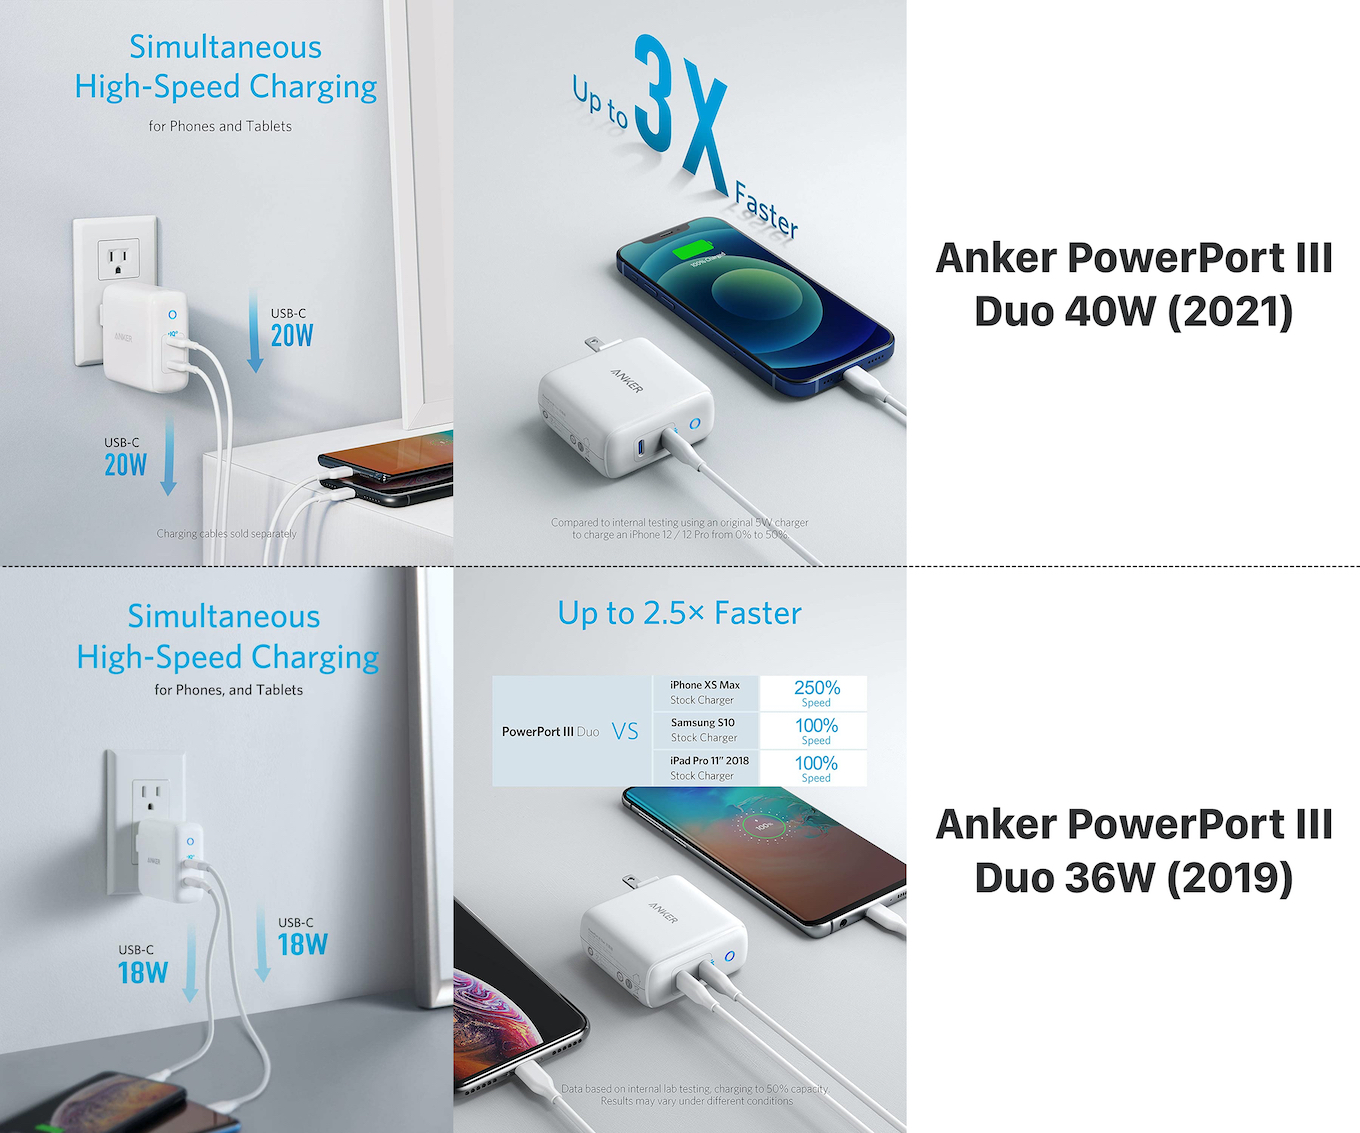 Anker PowerPort III Duo 40W and 36W